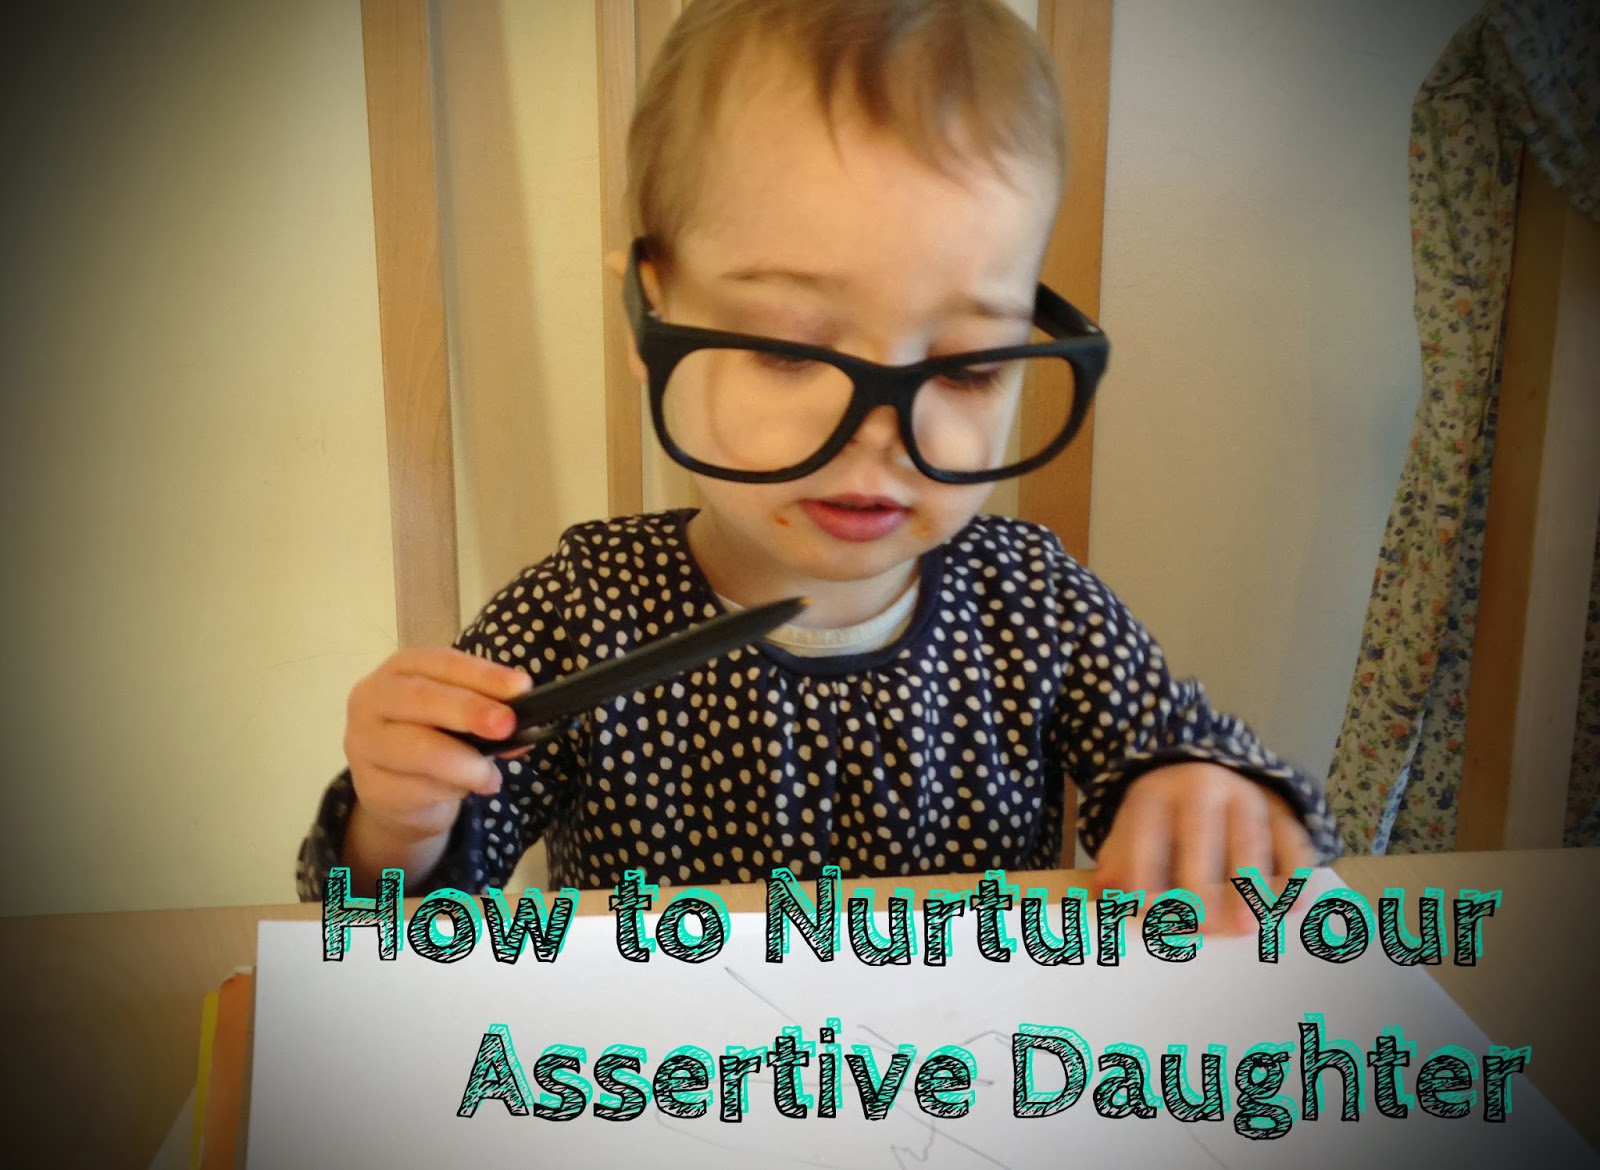 How to Nurture Your Assertive Daughter